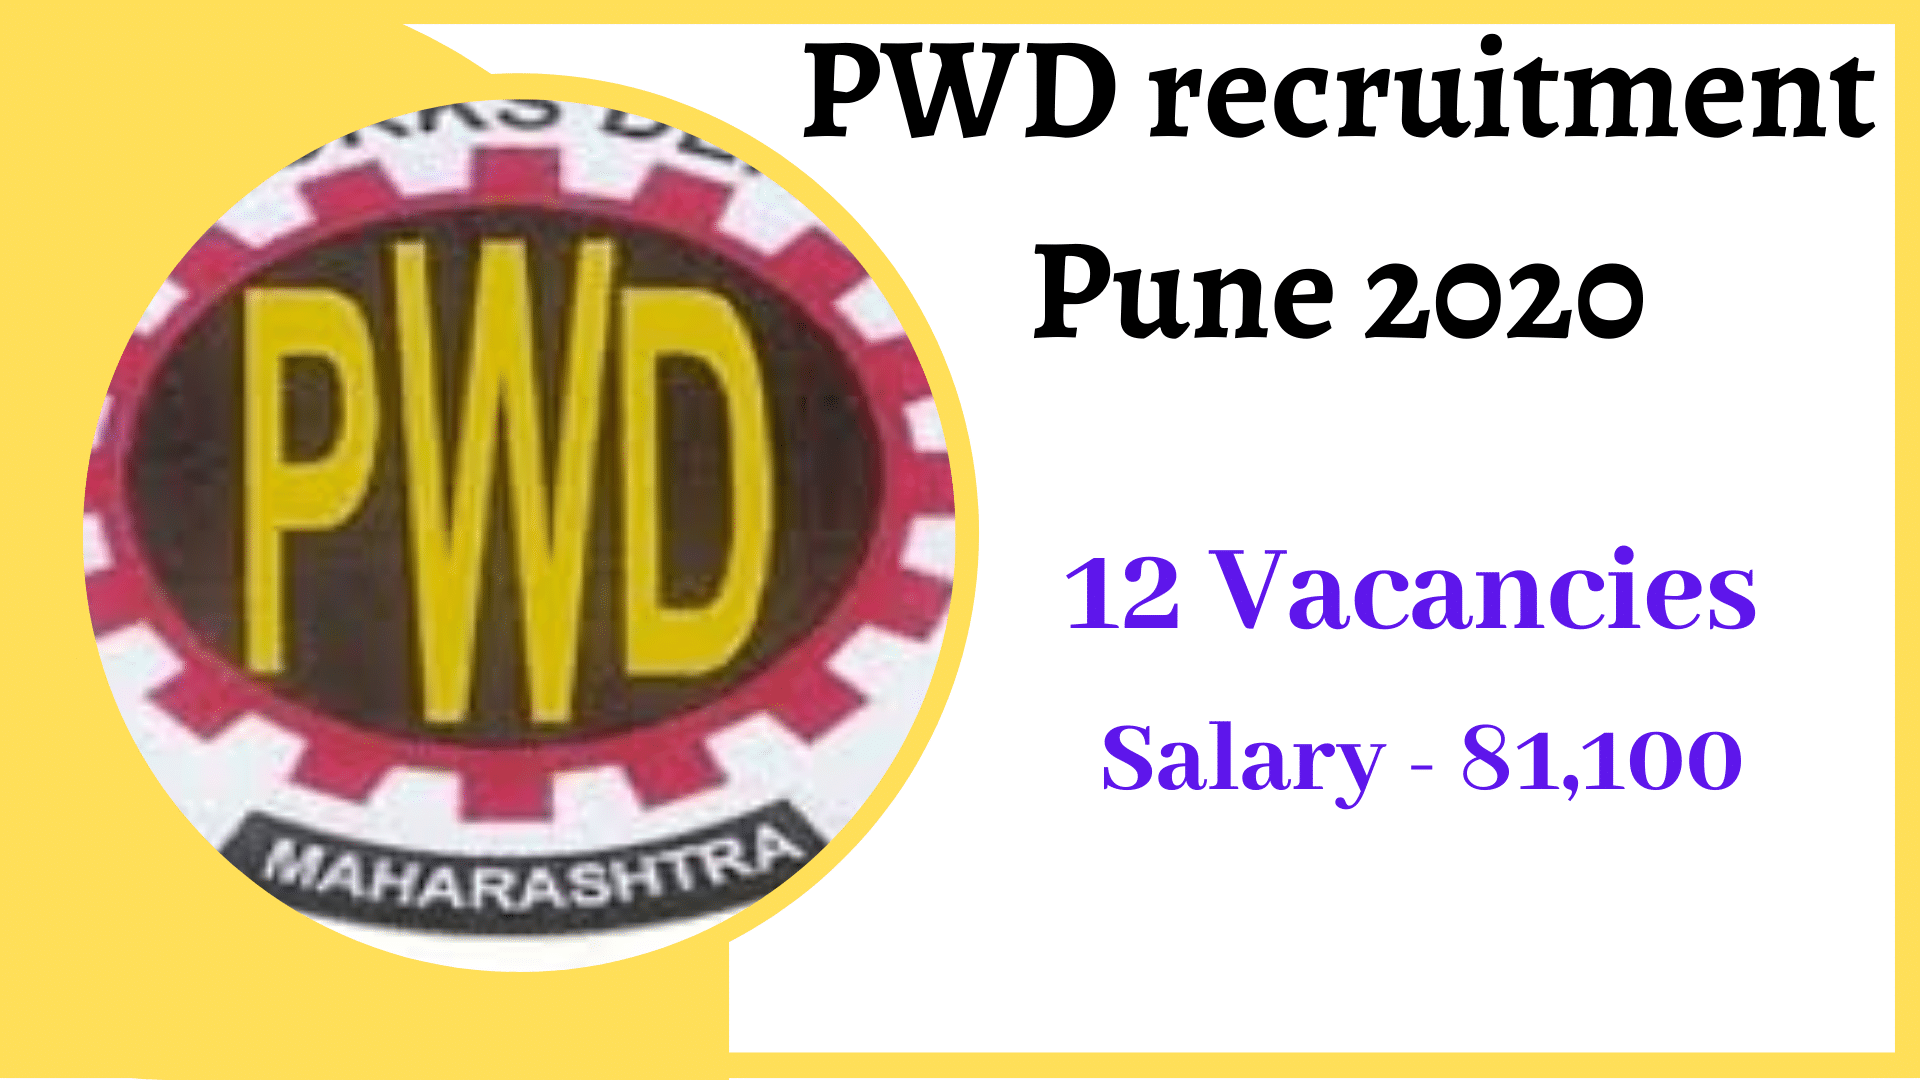 PWD Recruitment Pune 2020 – Maharashtra PWD Recruitment 2020 Apply Online